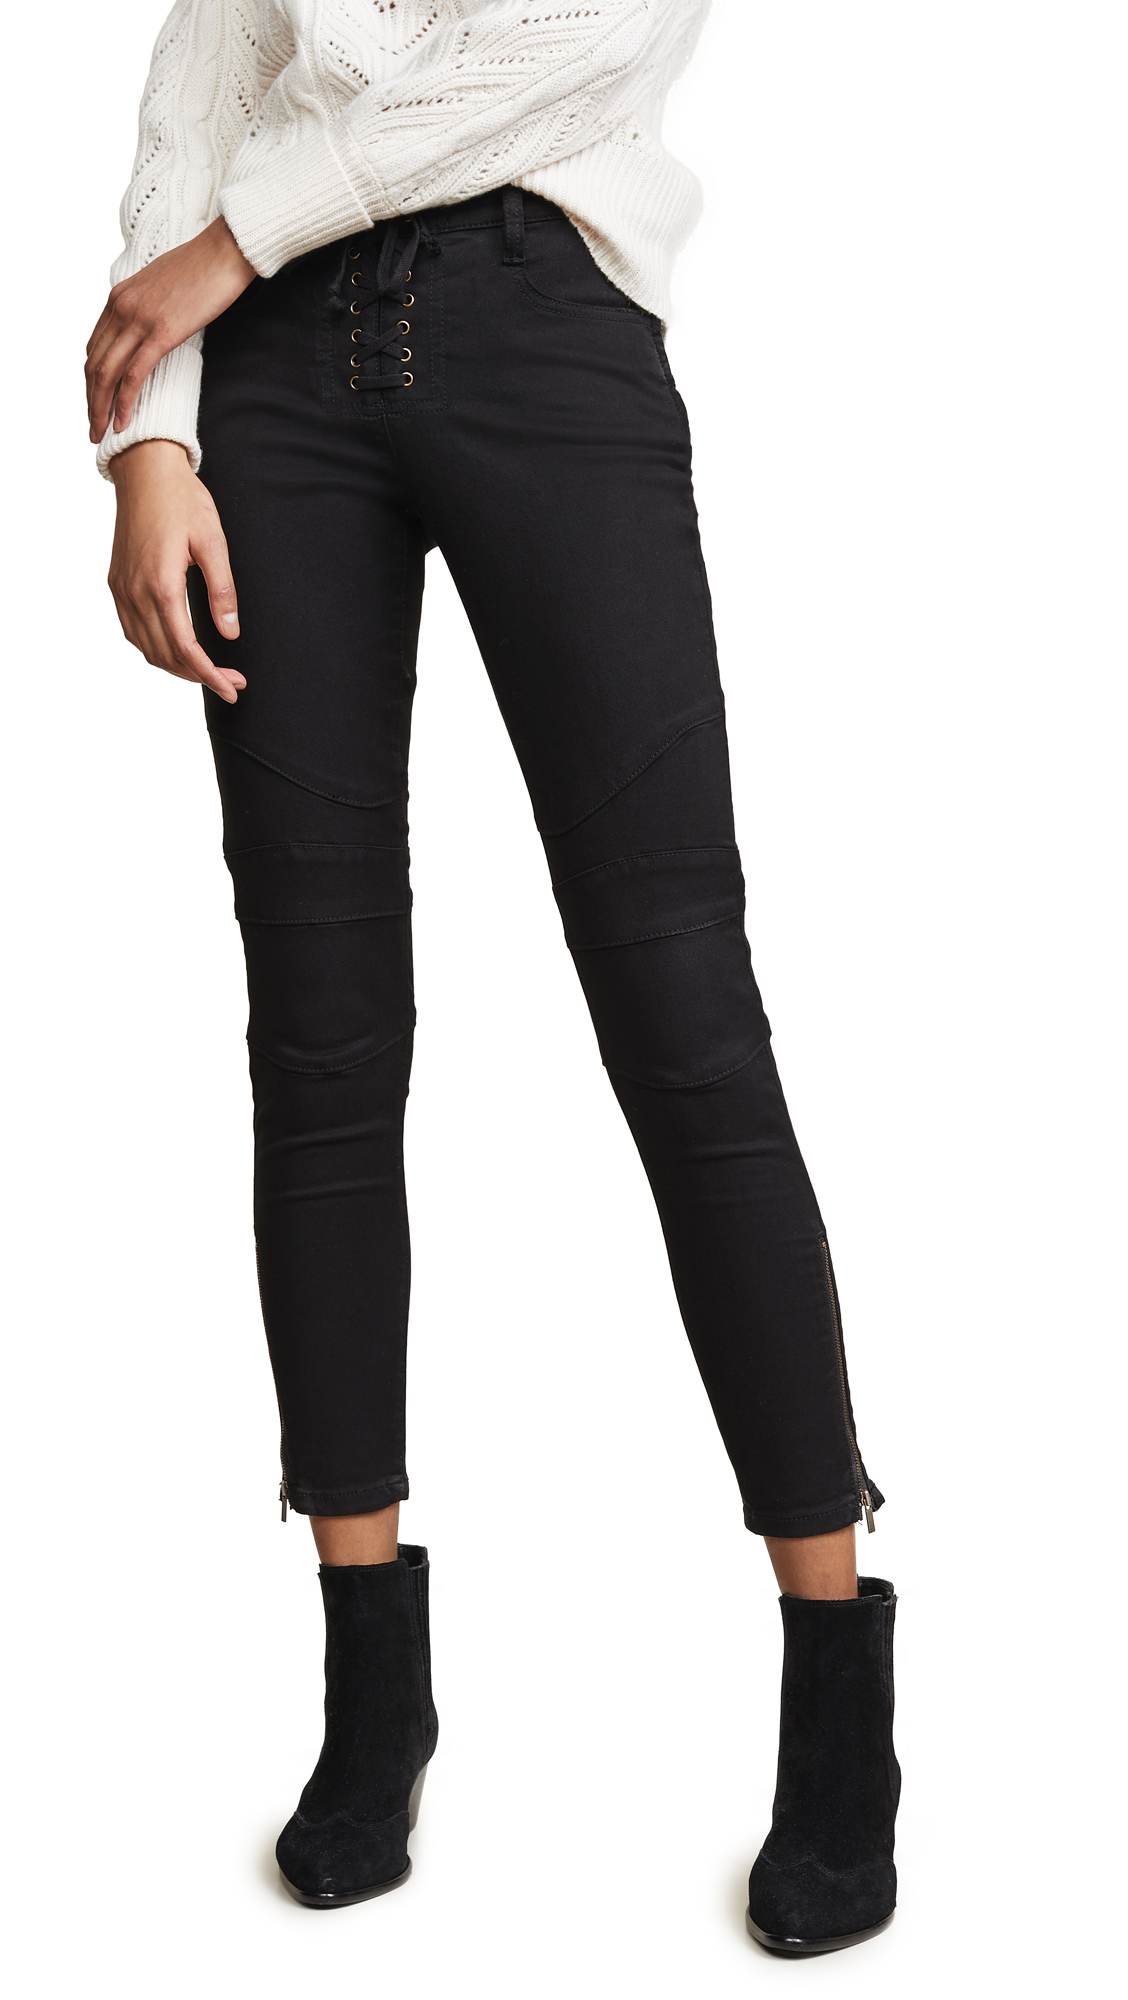 Adorea Skinny Lace-Up Ankle-Zip Moto Pants in Caviar